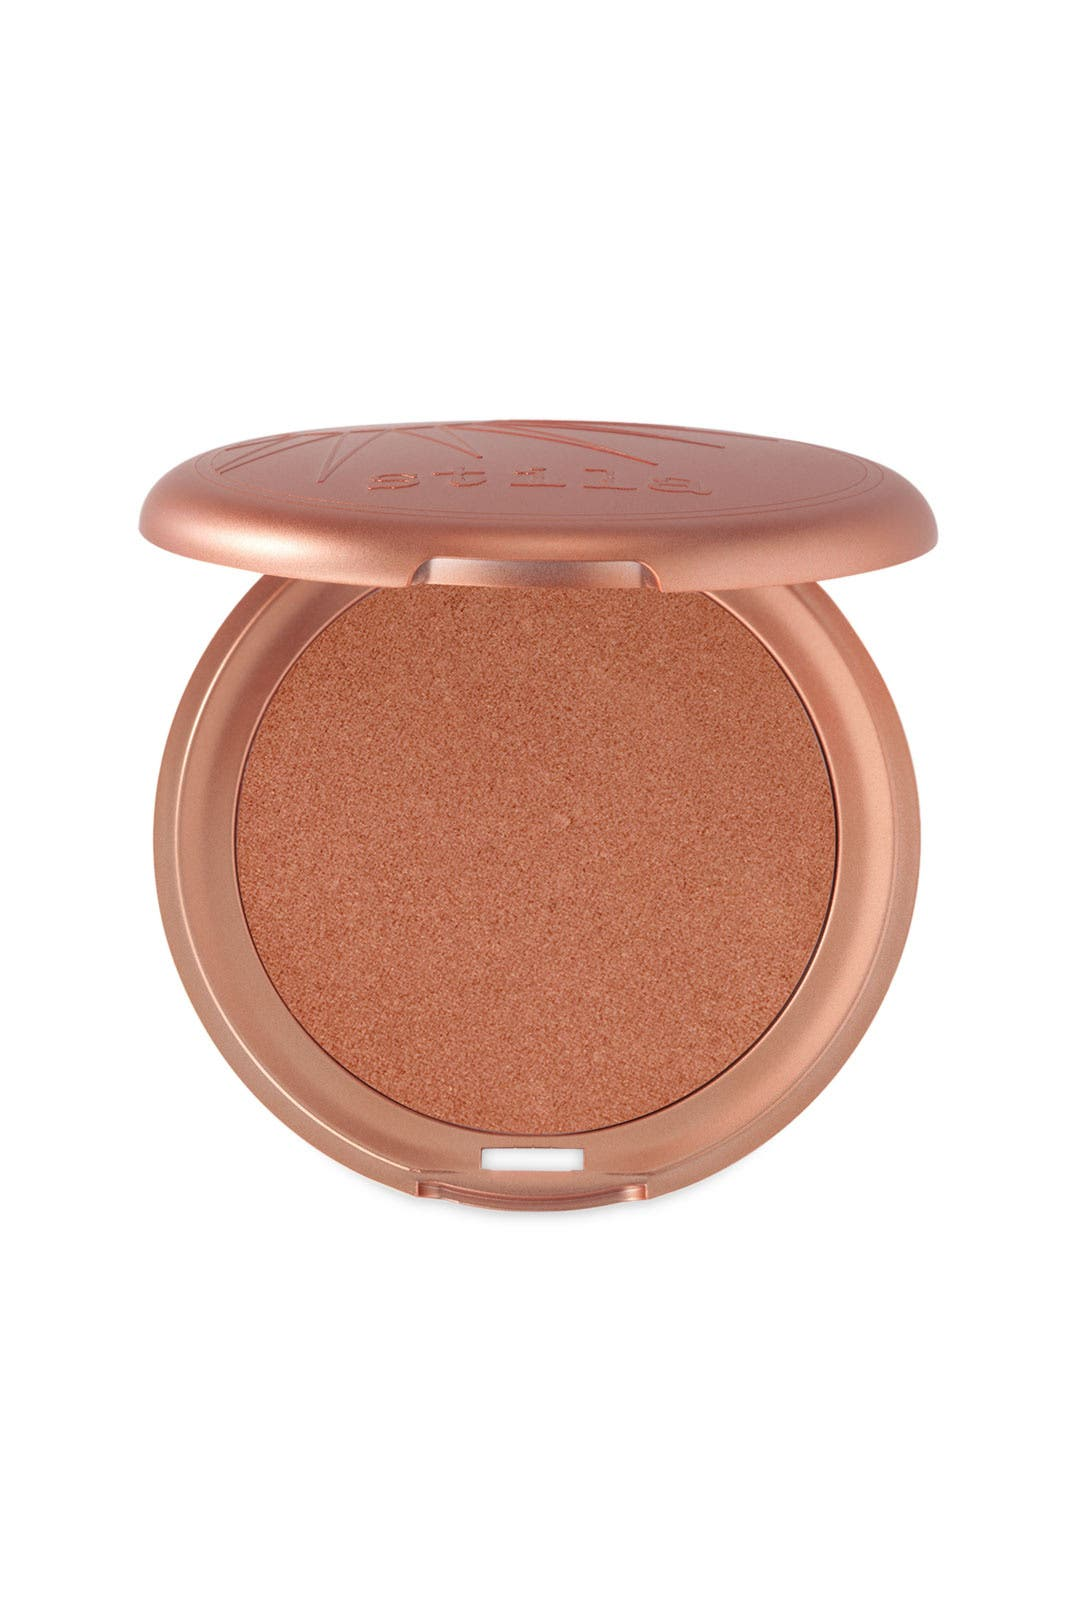 sun highlighter by stila